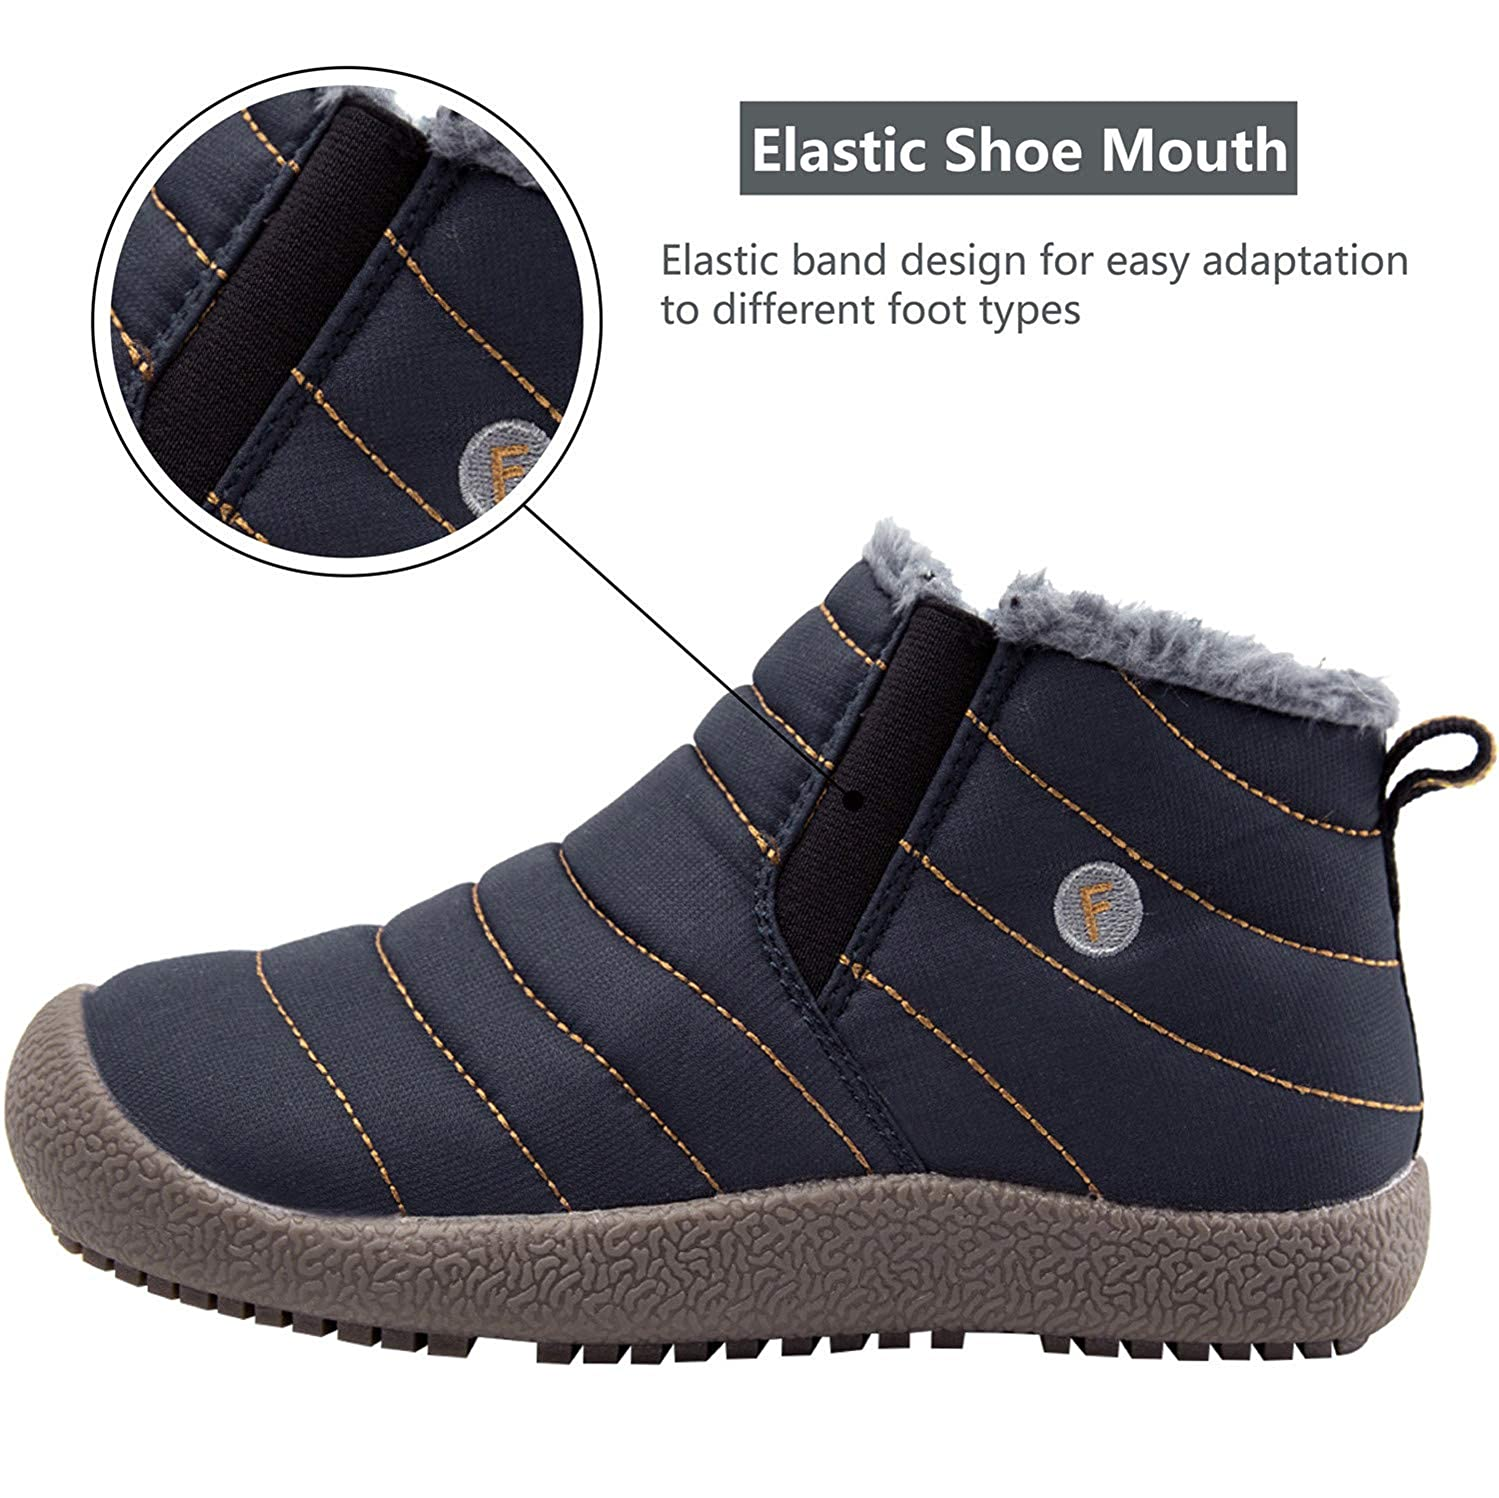 JINKUNL Kids Winter Warm Snow Boots Outdoor Fur Lined Lightweight Ankle Booties Sneakers Shoes for Girls Boys